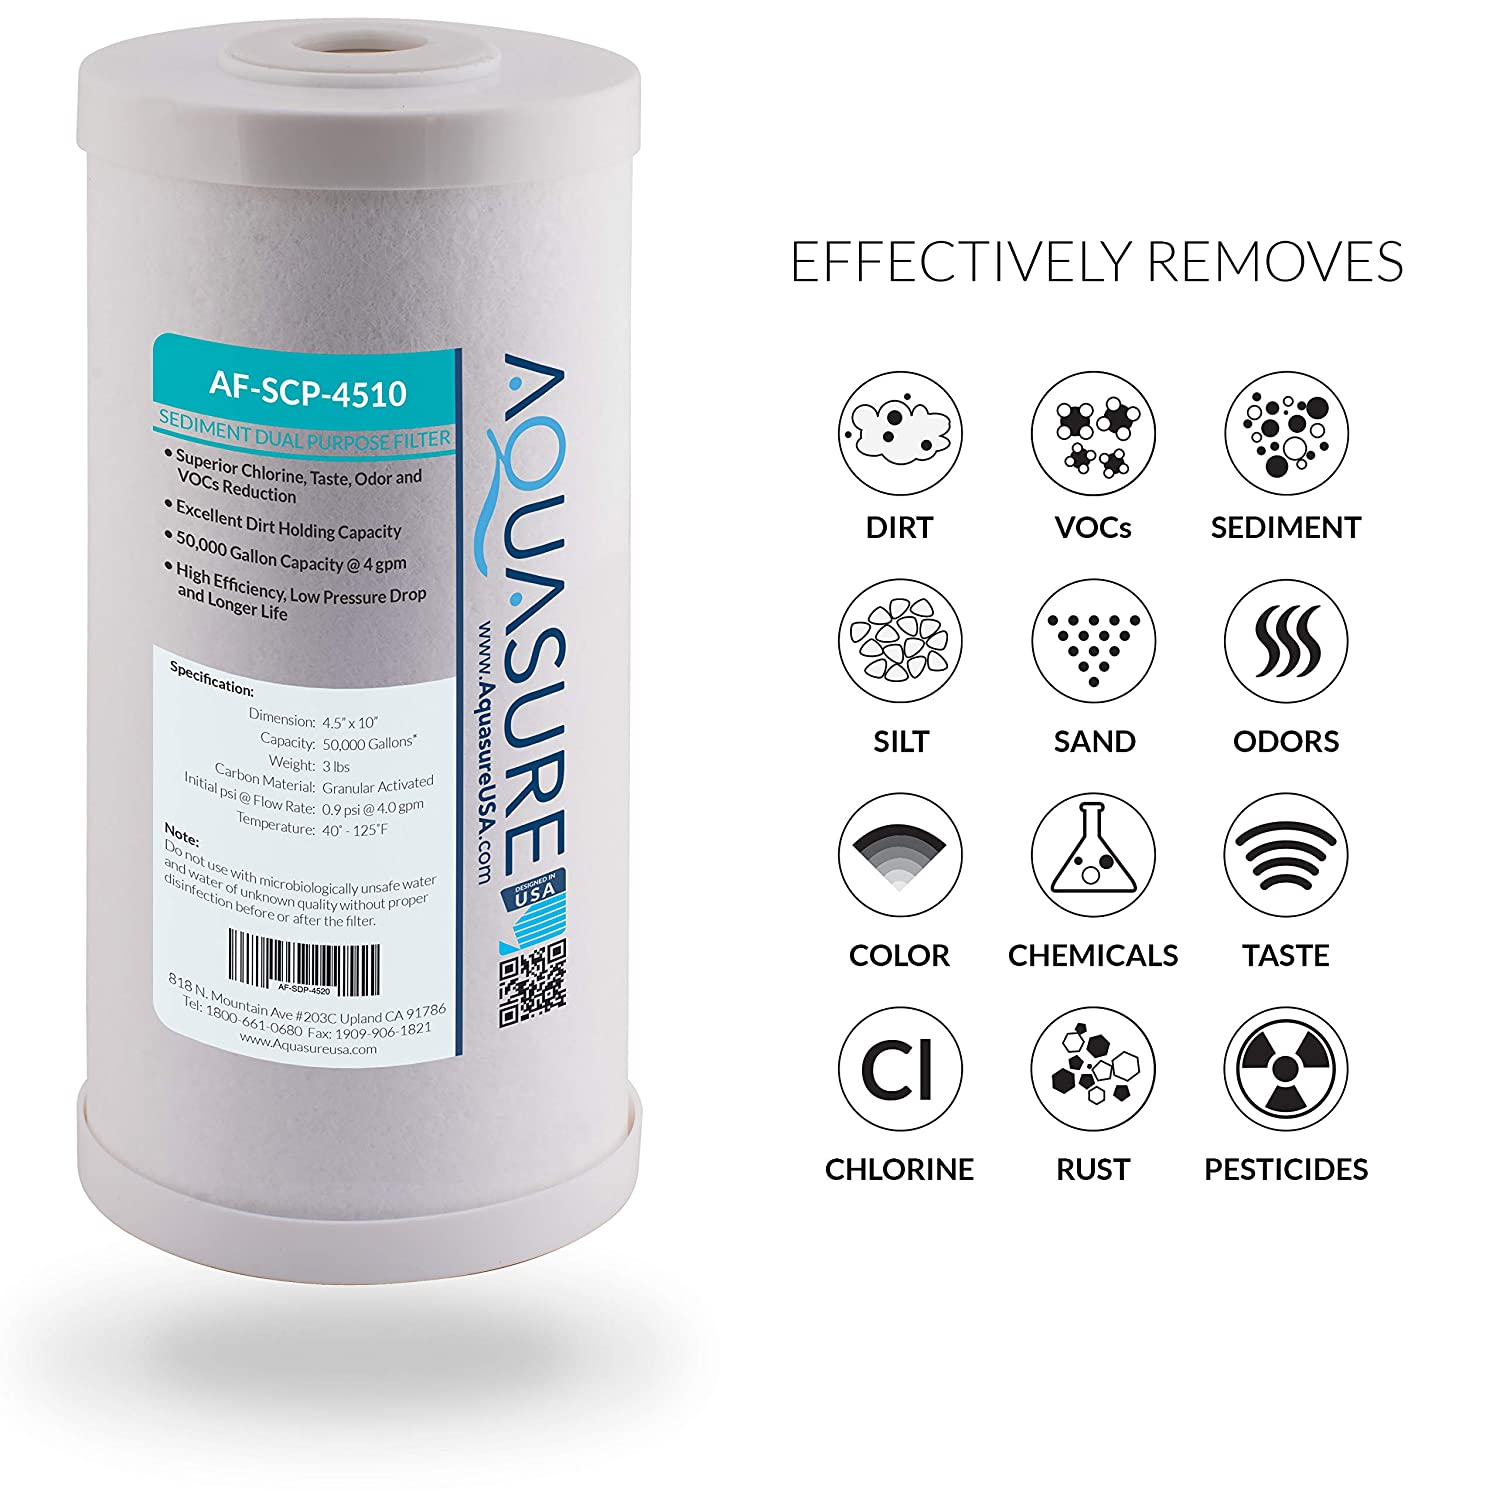 10 x 4.5 GAC Carbon Mesh Whole House Replacement Water Filter Aquasure Fortitude 25 Micron Sediment